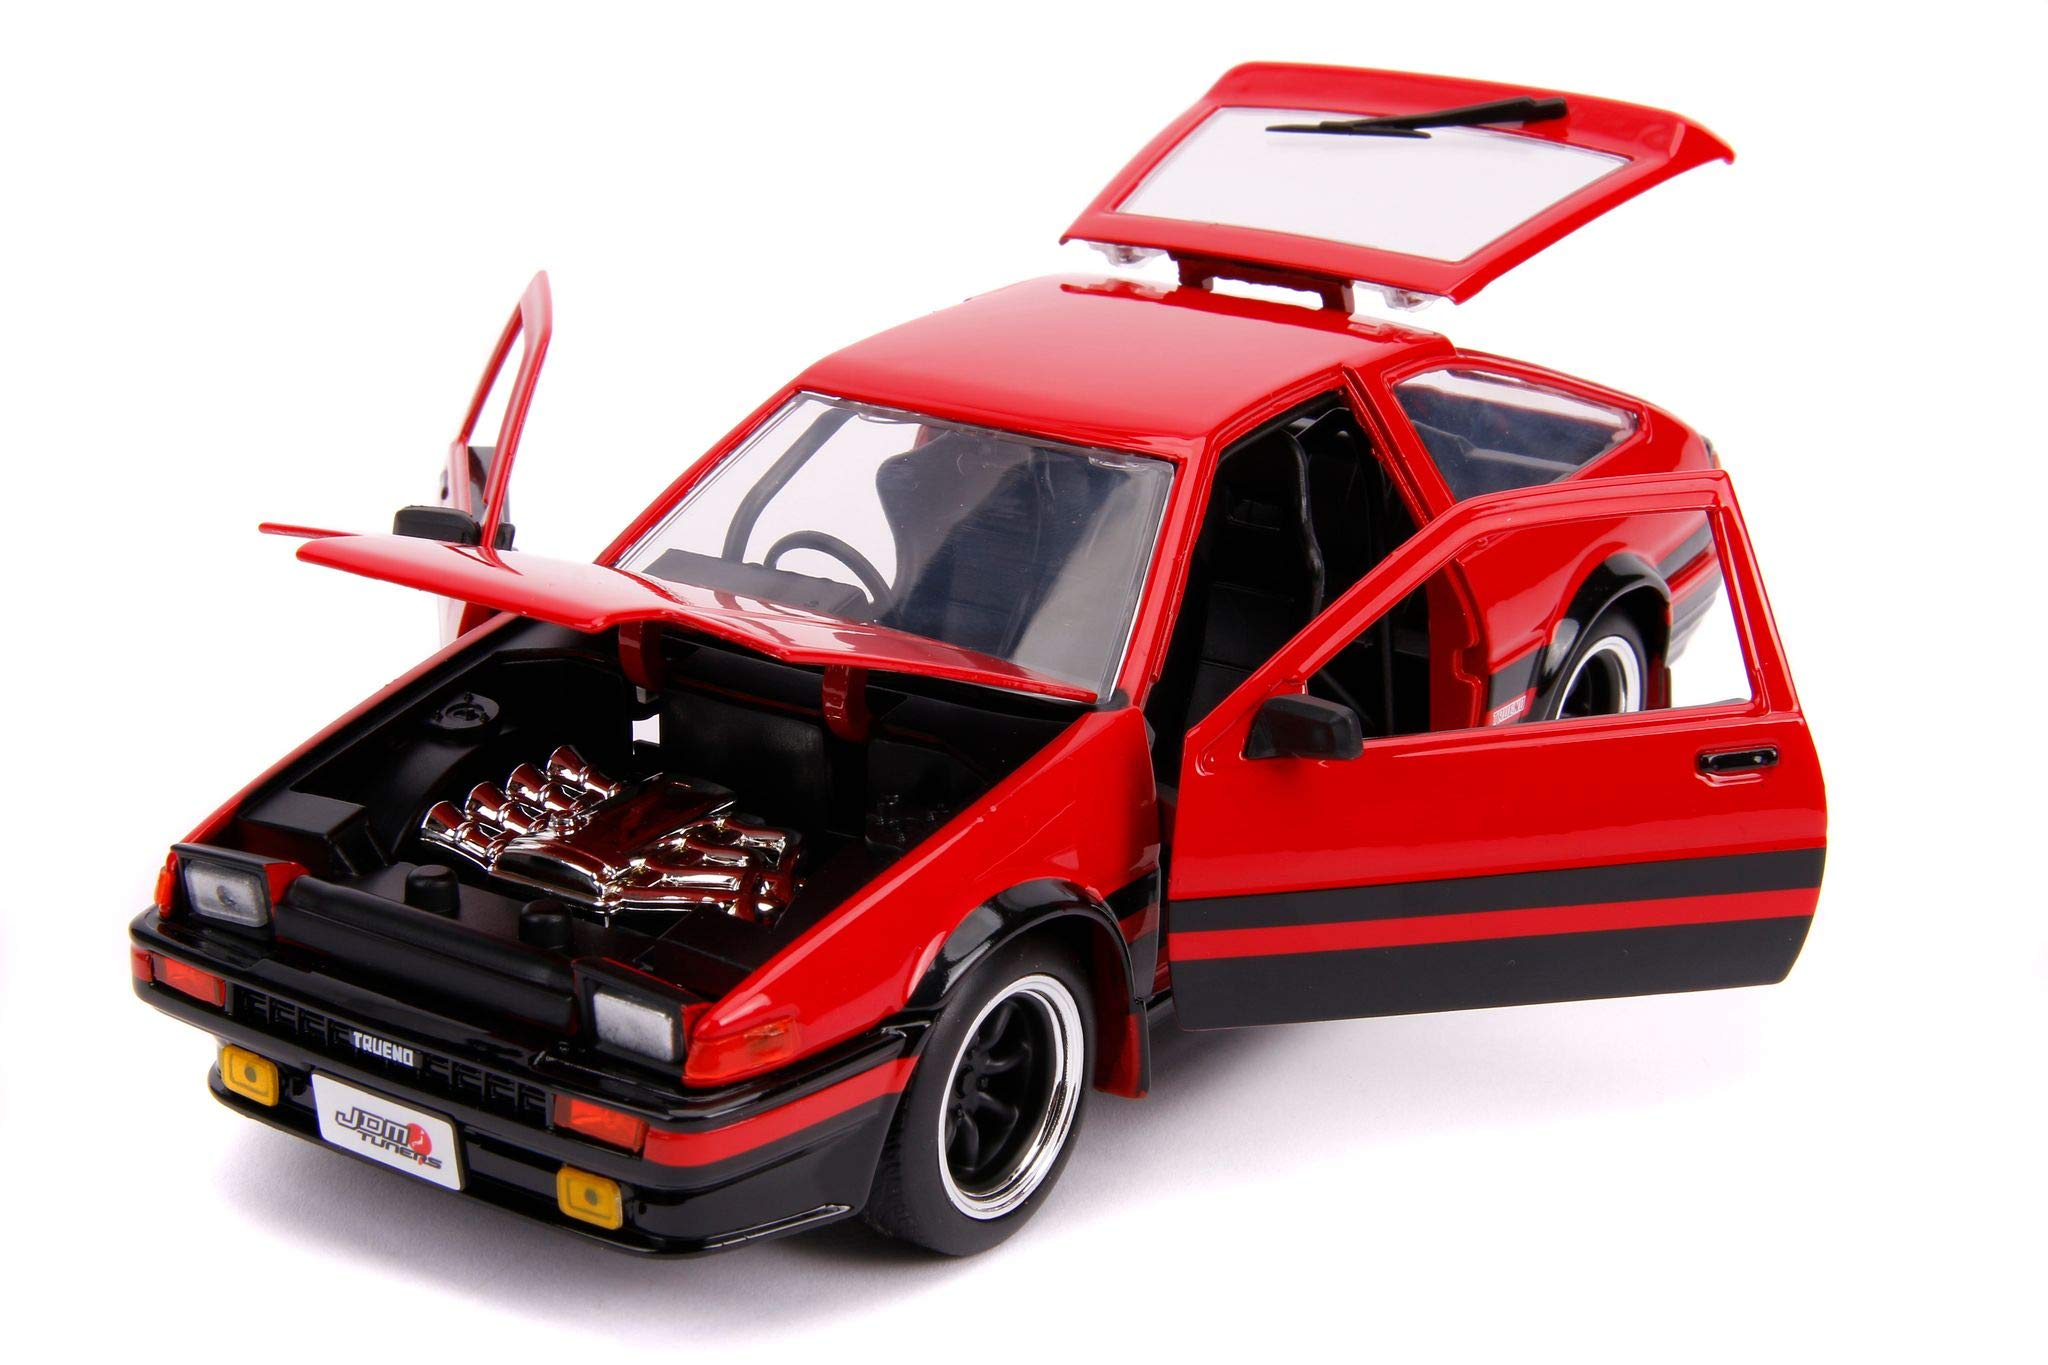 Jada Toys JDM Tuners 1986 Toyota Trueno AE86 Die-cast Car Red, Toys for Kids and Adults